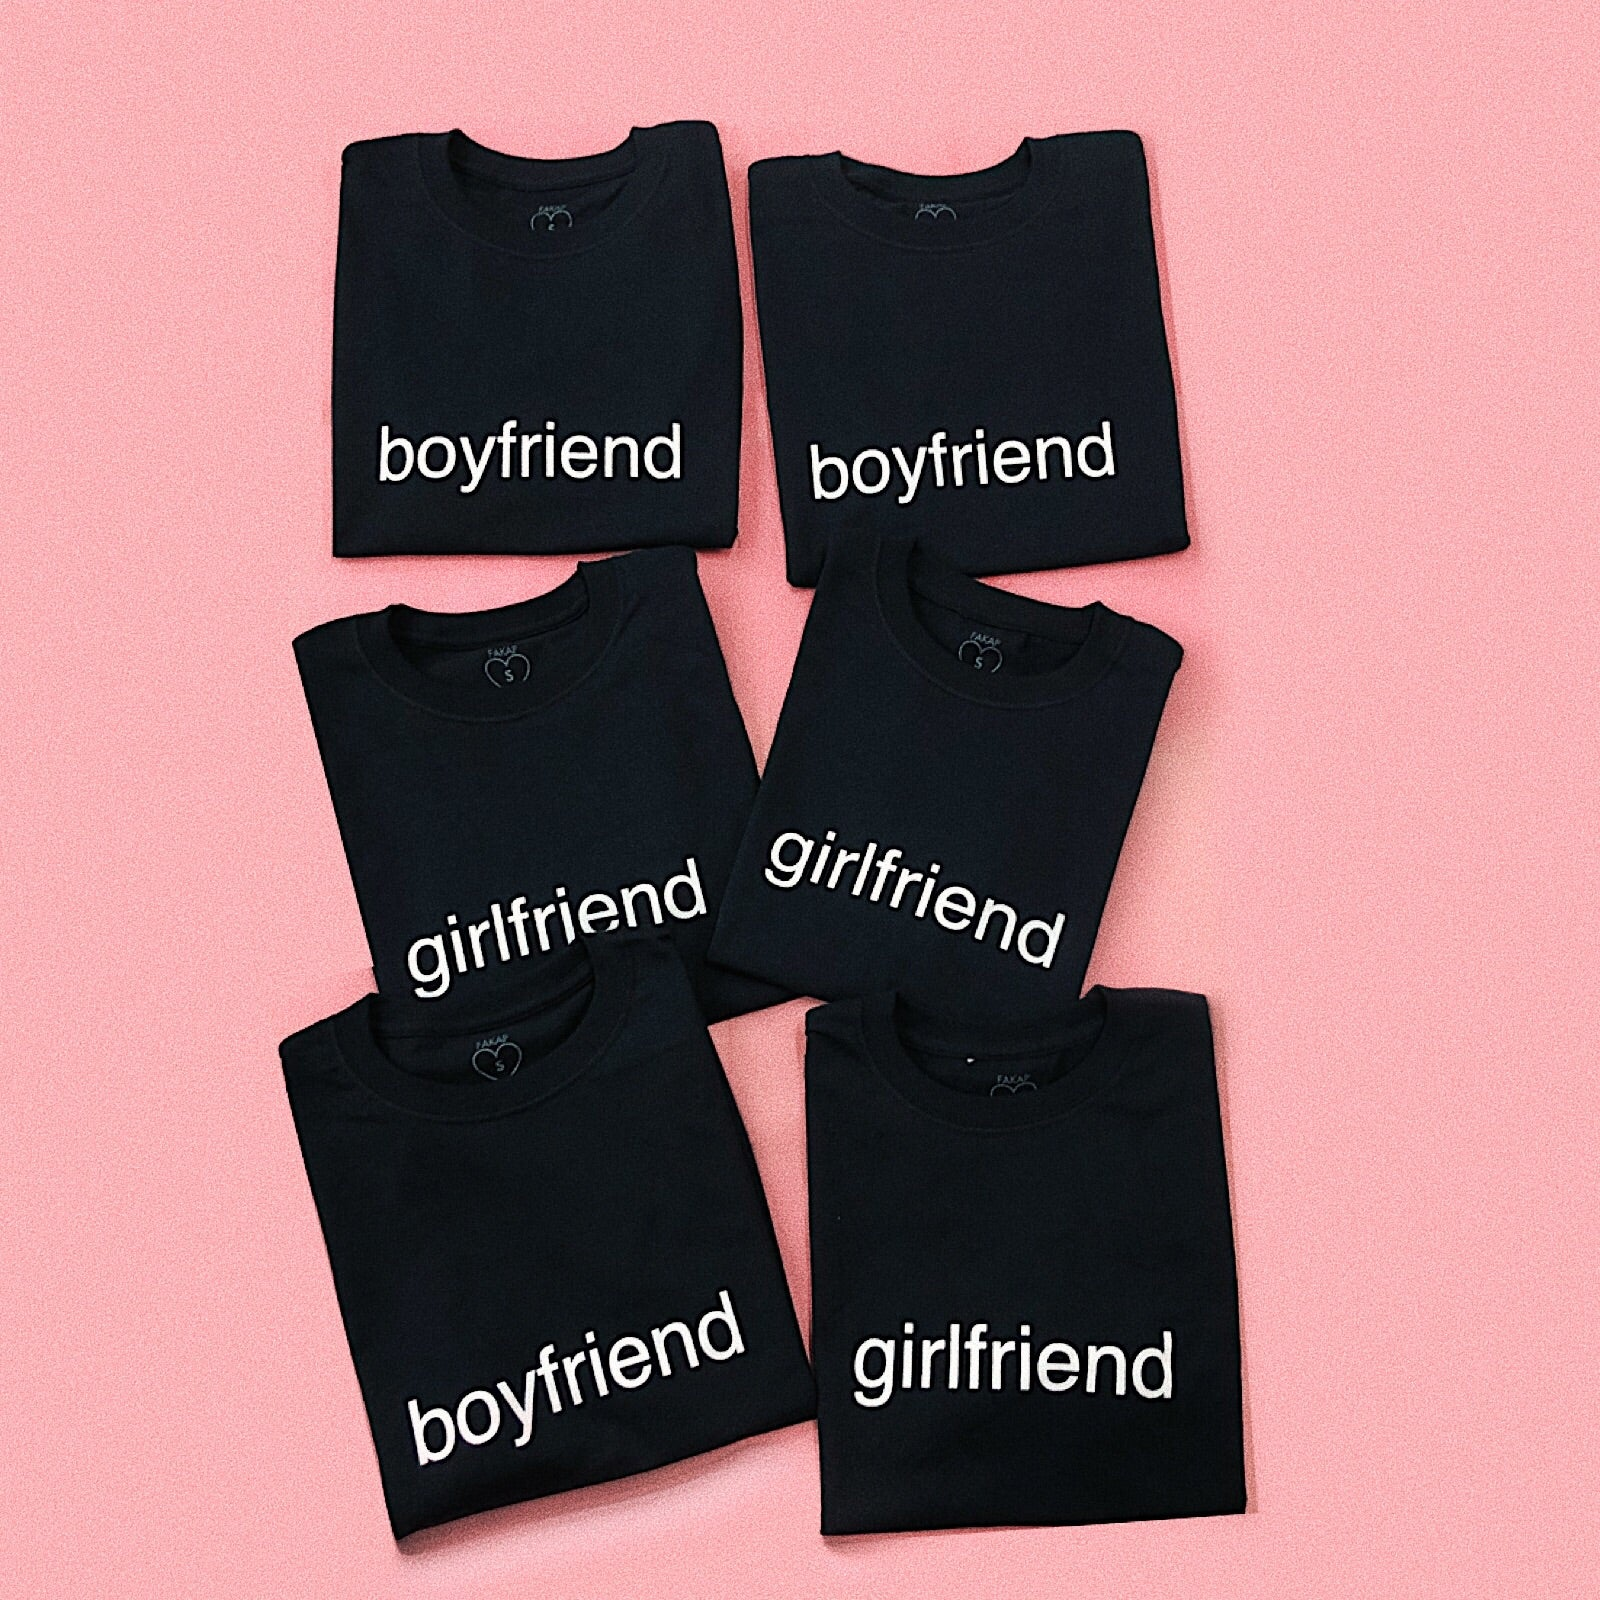 boyfriend girlfriend T-shirt